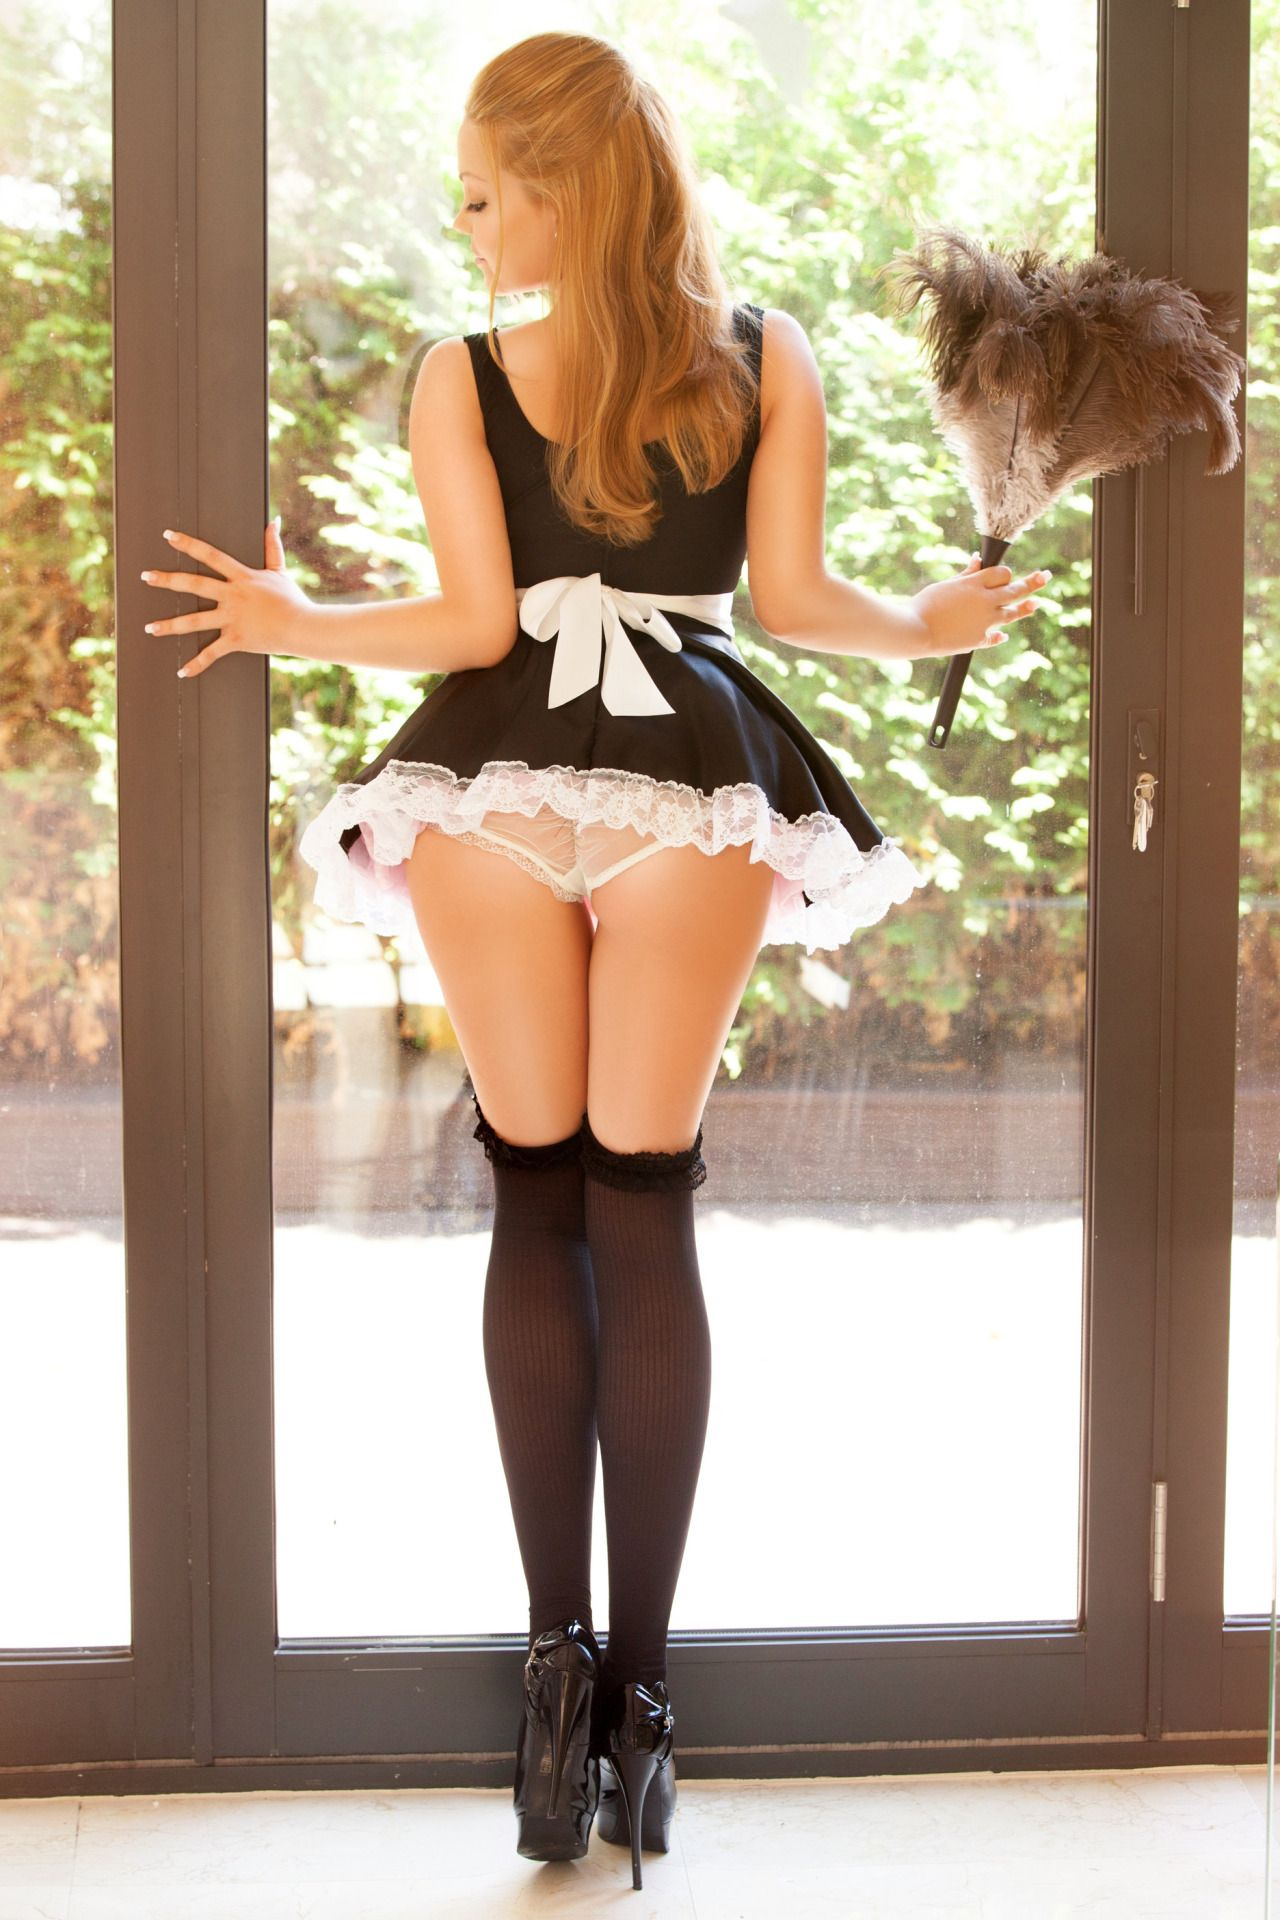 wife submissive French maid